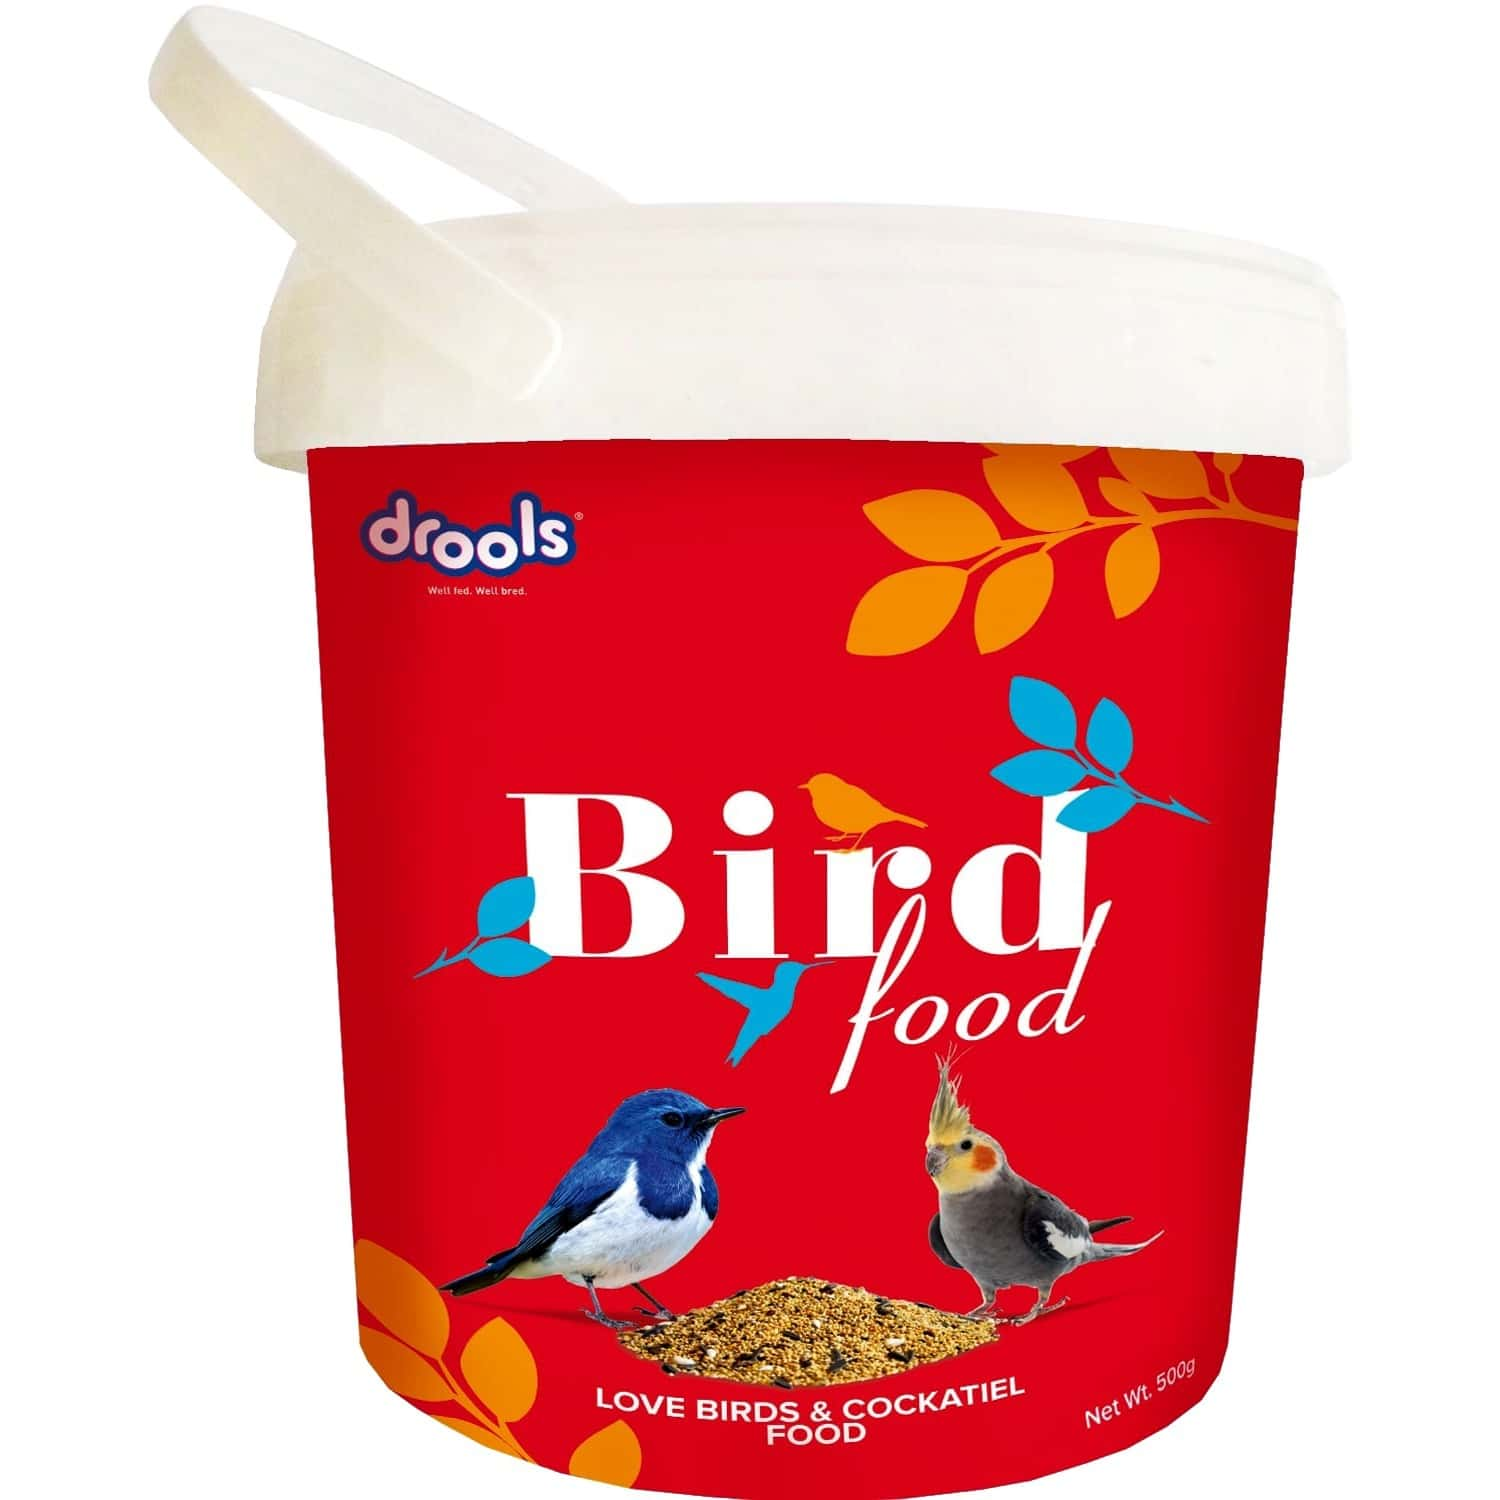 Bird Food For Love Birds And Cockatiel With Mixed Seeds 500g